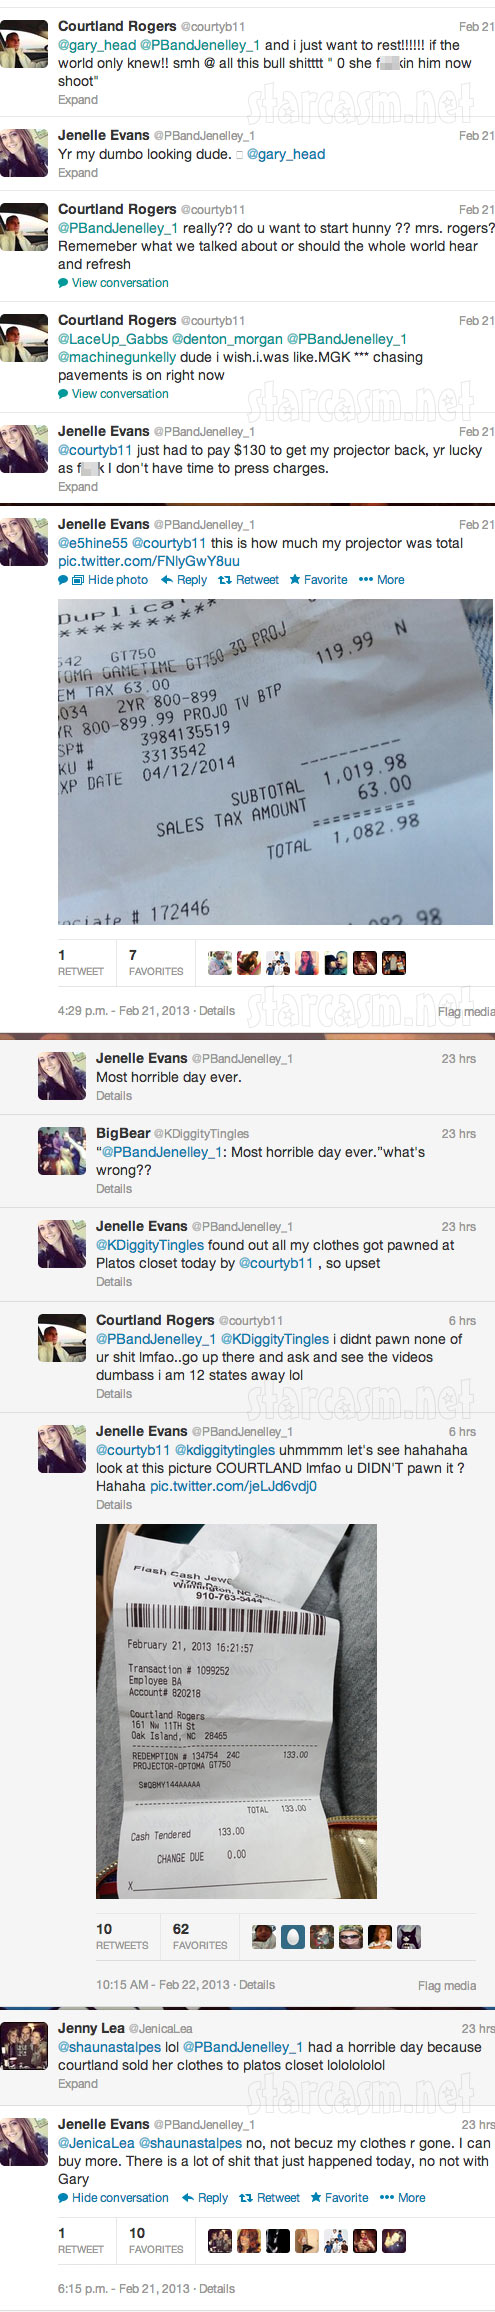 Jenelle Evans Twitter feud with Courtland Rogers 3